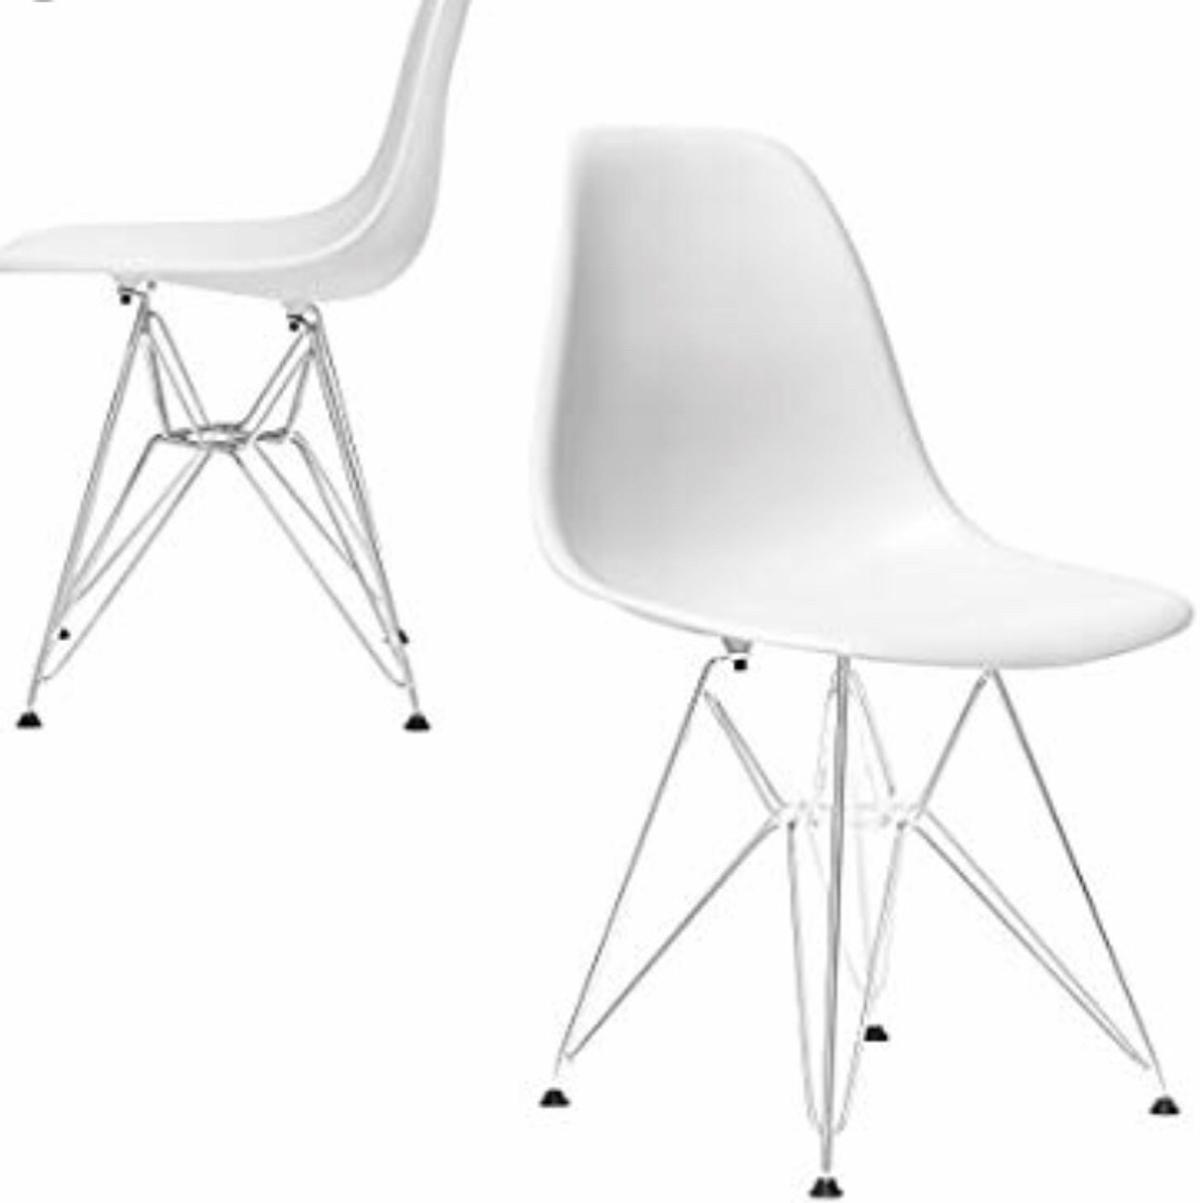 Terrific Eames Eiffel Dining Chair Set White Onthecornerstone Fun Painted Chair Ideas Images Onthecornerstoneorg